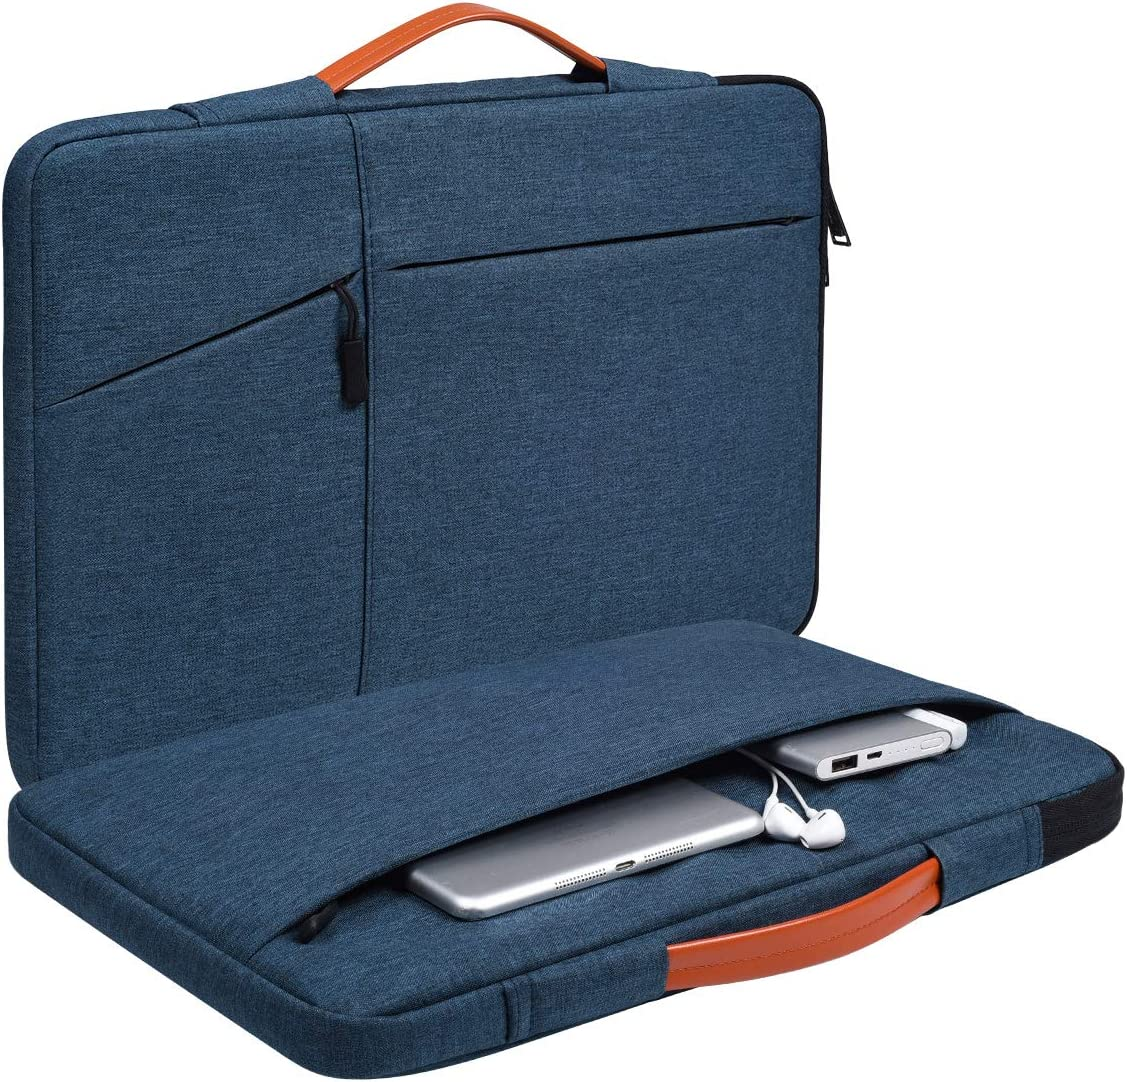 14-15 Inch Laptop Case Bag for Dell XPS 15 7590 9575/Dell Latitude 14,HP Pavilion x360 14/HP Stream 14/HP Chromebook 14,Acer Spin 3 14 Briefcase Sleeve Bag(Blue)